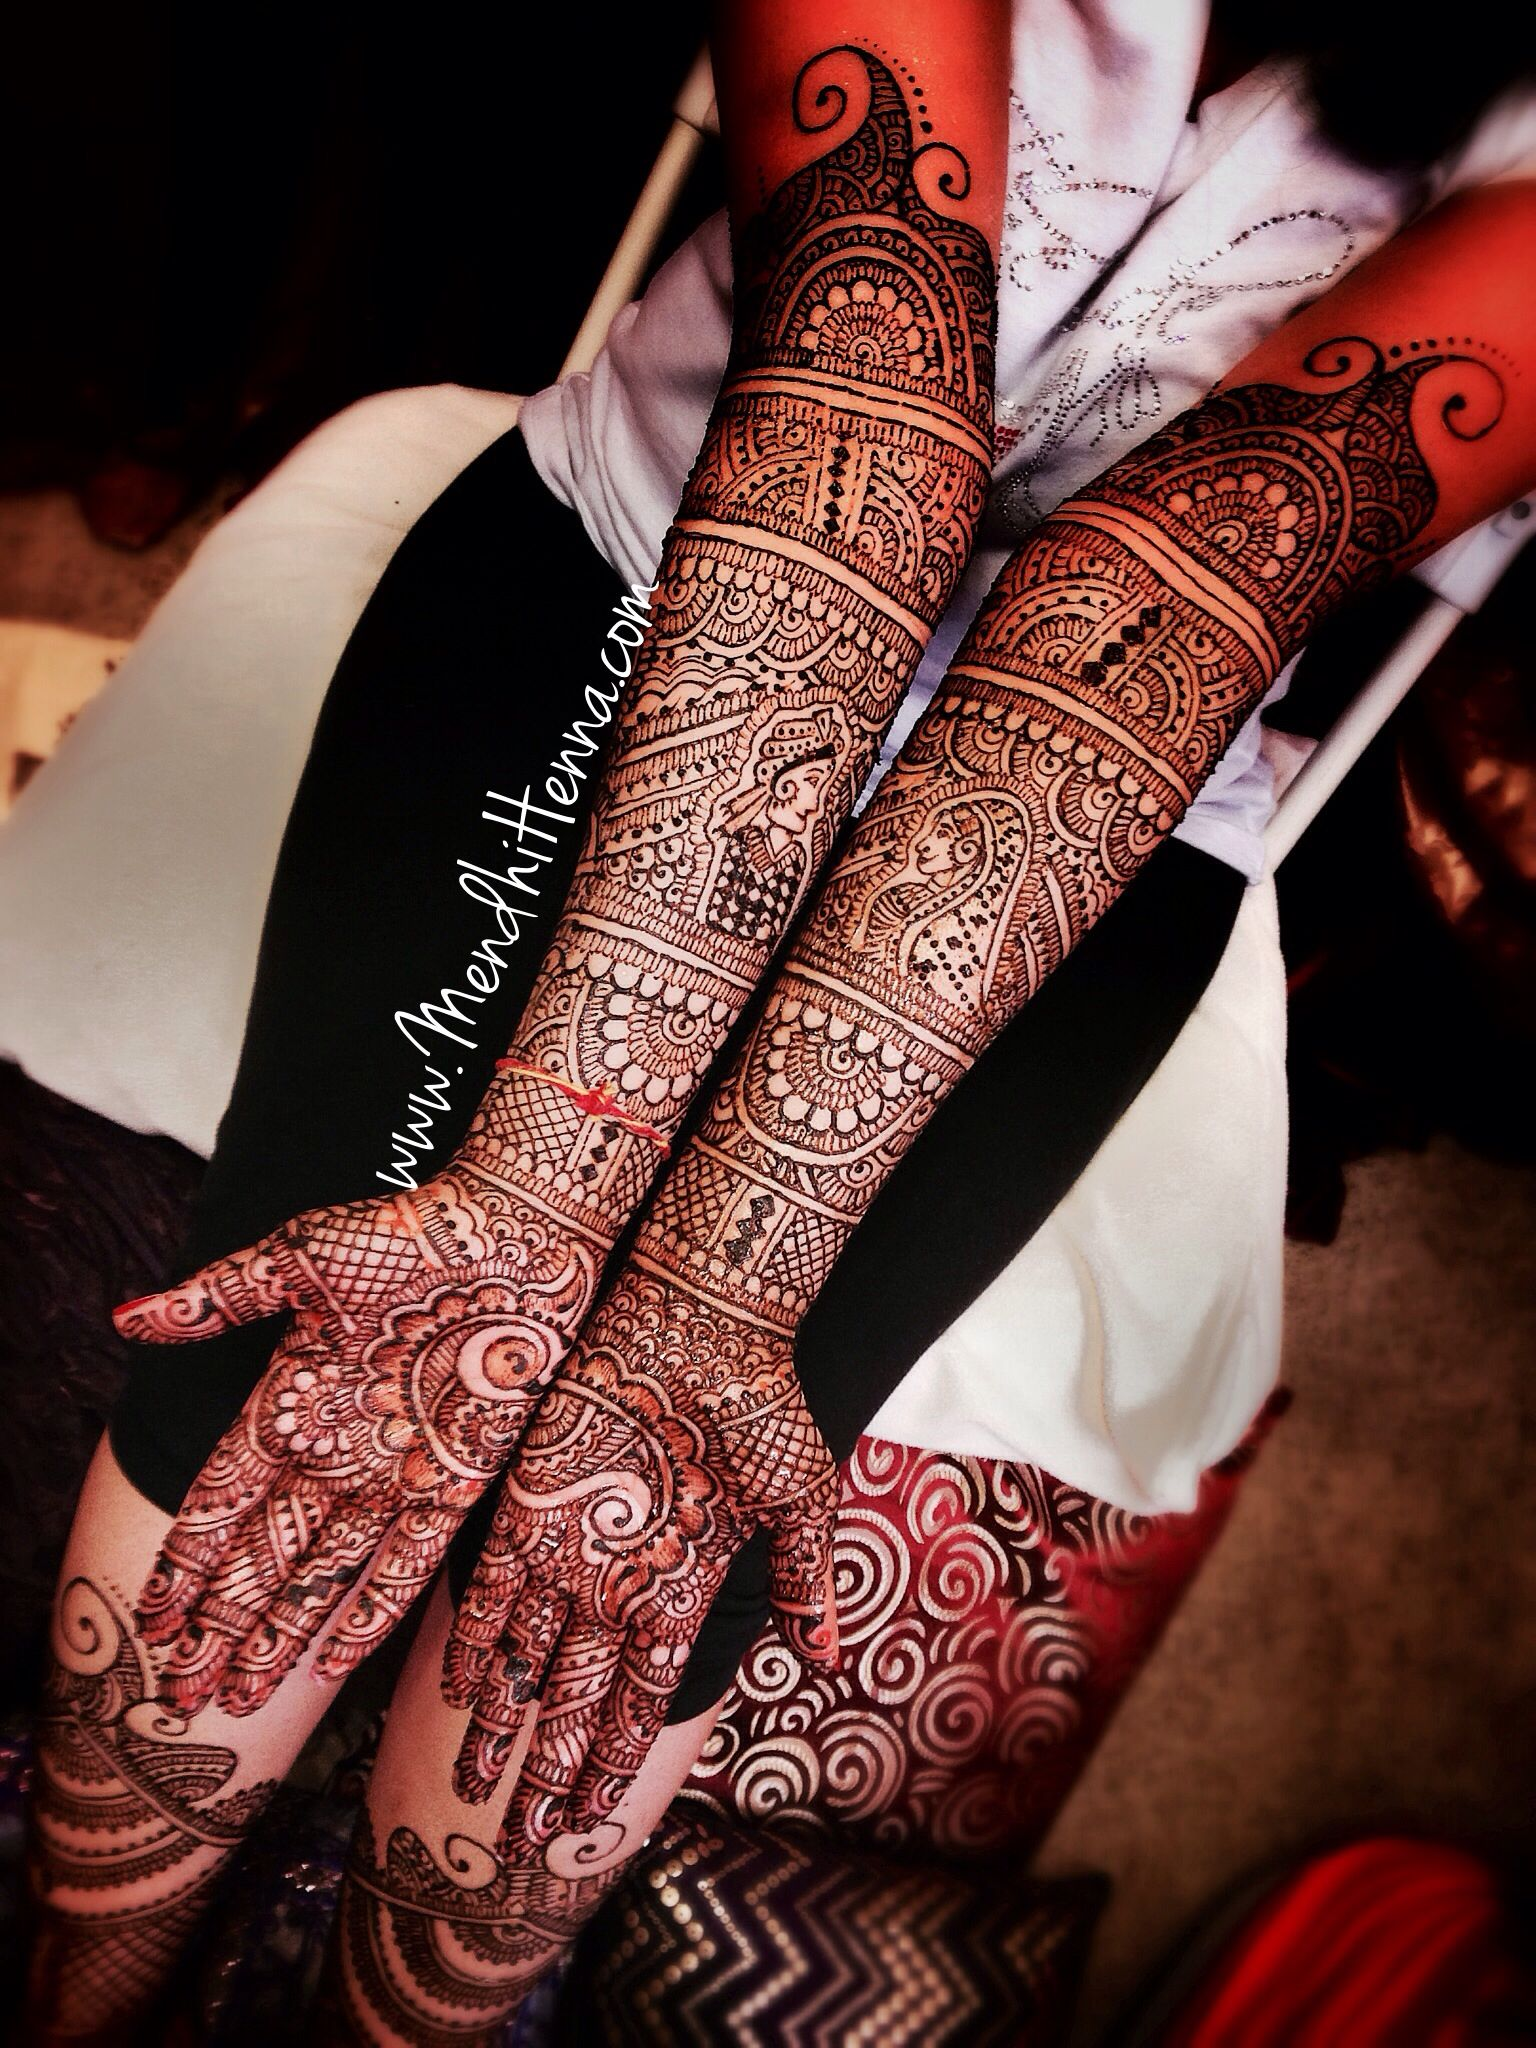 136 Best Images About Henna Inspiration Arms On Pinterest: Bridal Mehendi - So Intricate And Beautiful